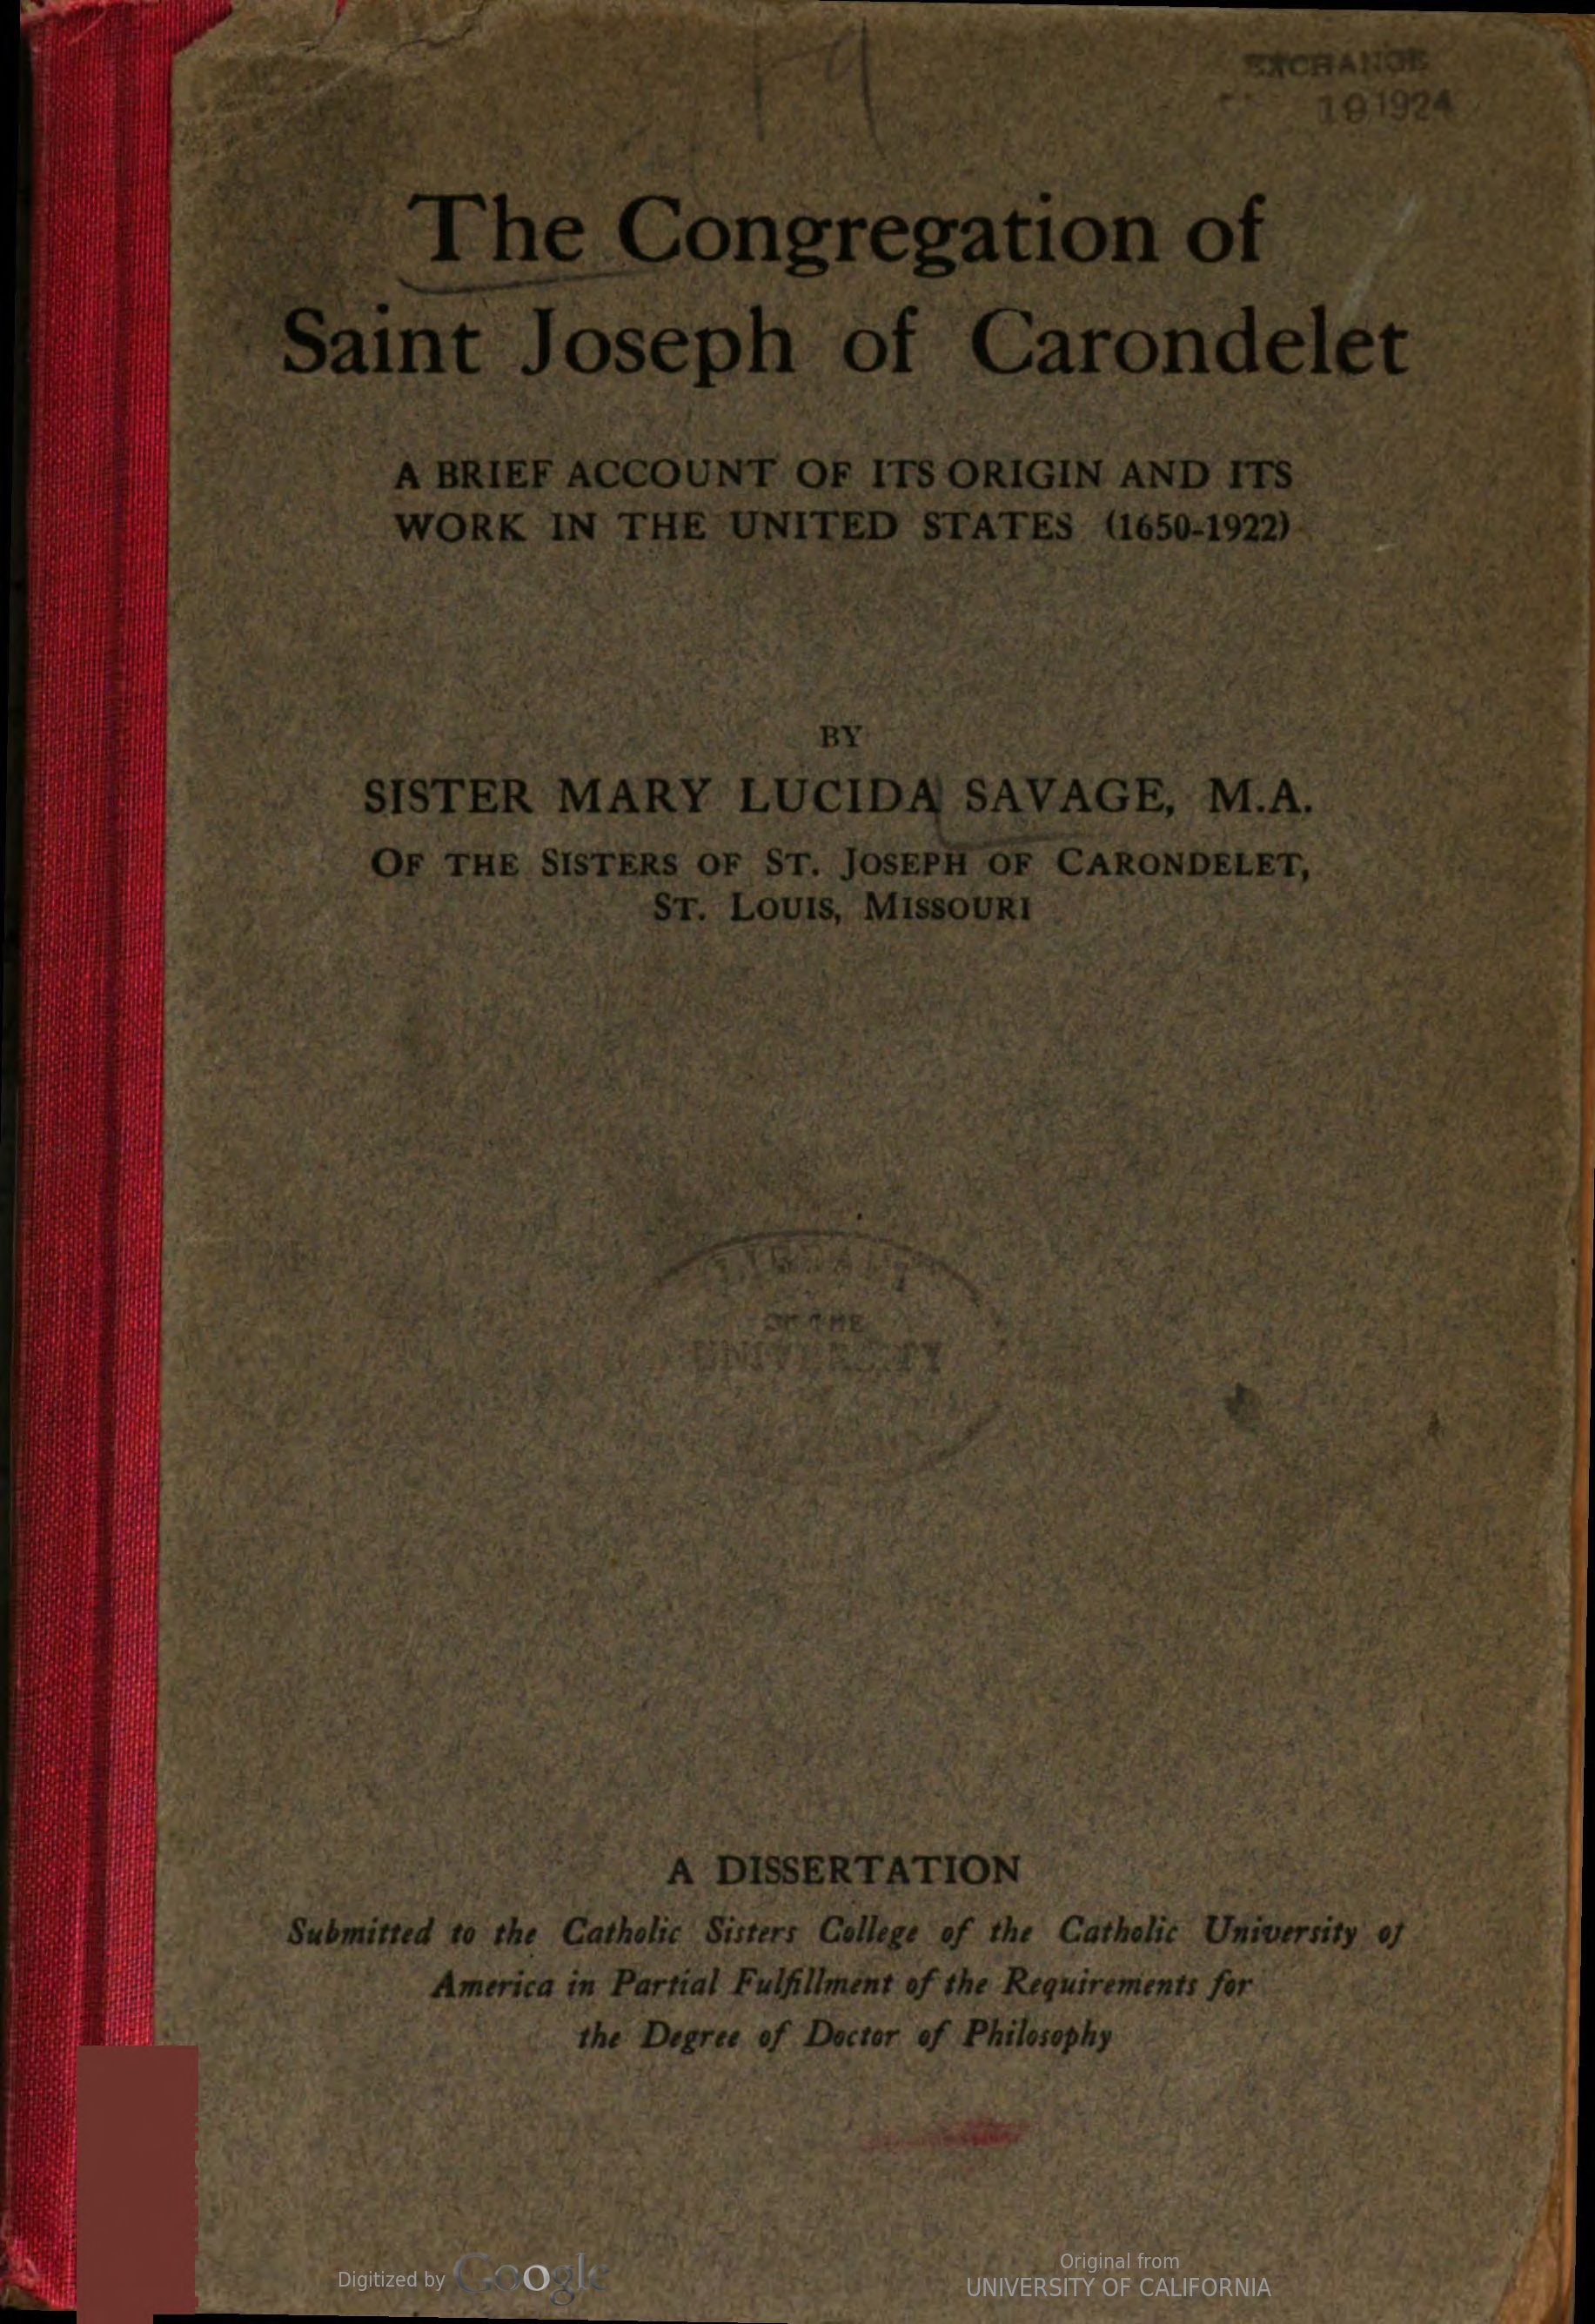 The Congregation of Saint Joseph of Carondelet: A Brief Account of its Origin and its Work in the United States (1650-1922) by Mary Lucida Savage